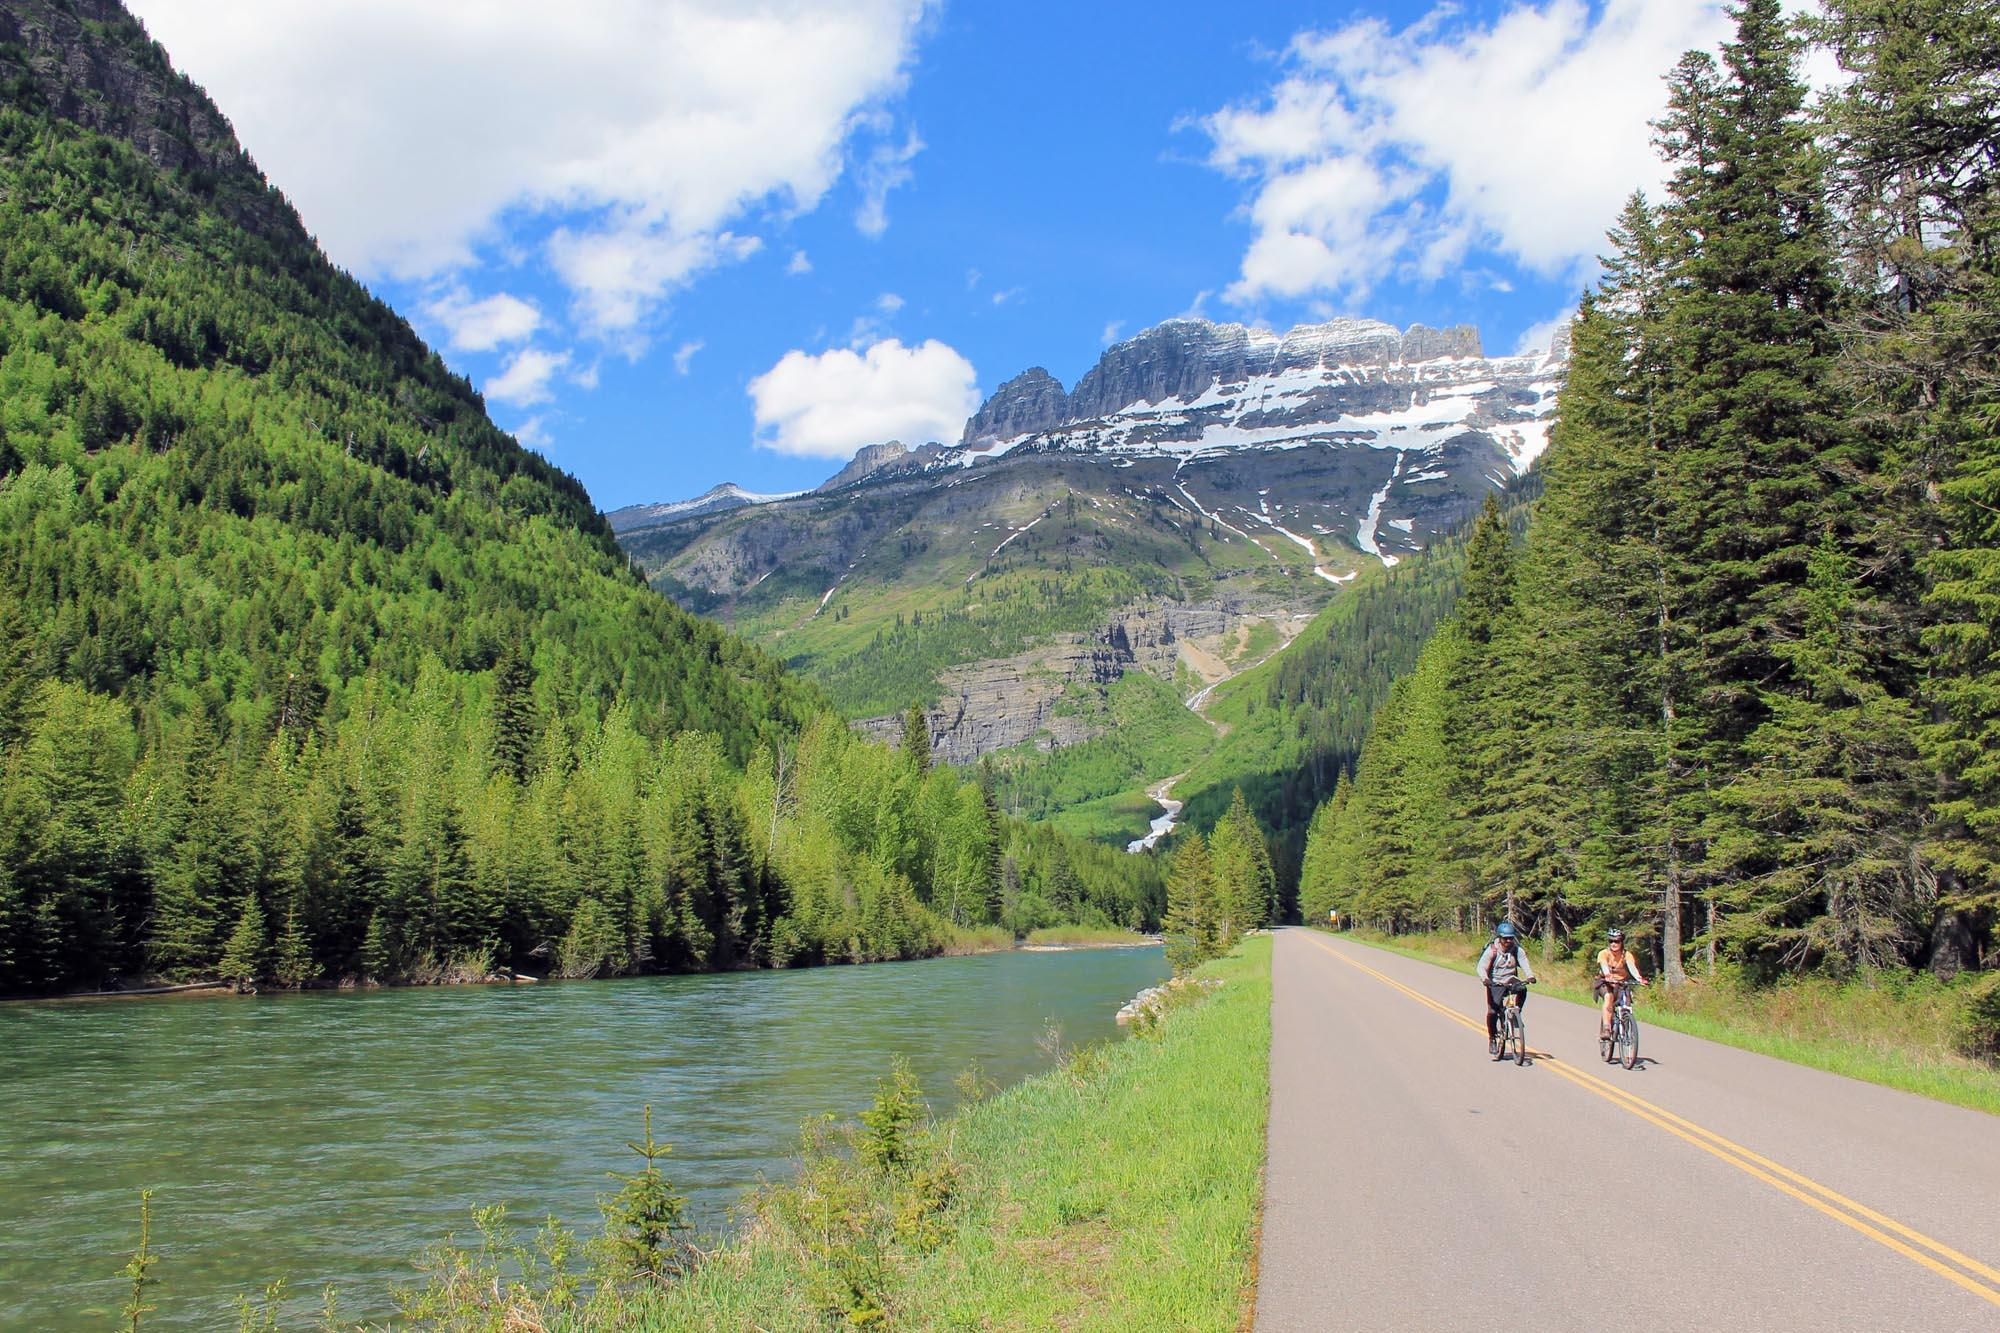 Biking along the flat lower sections of Going-to-the-Sun Road